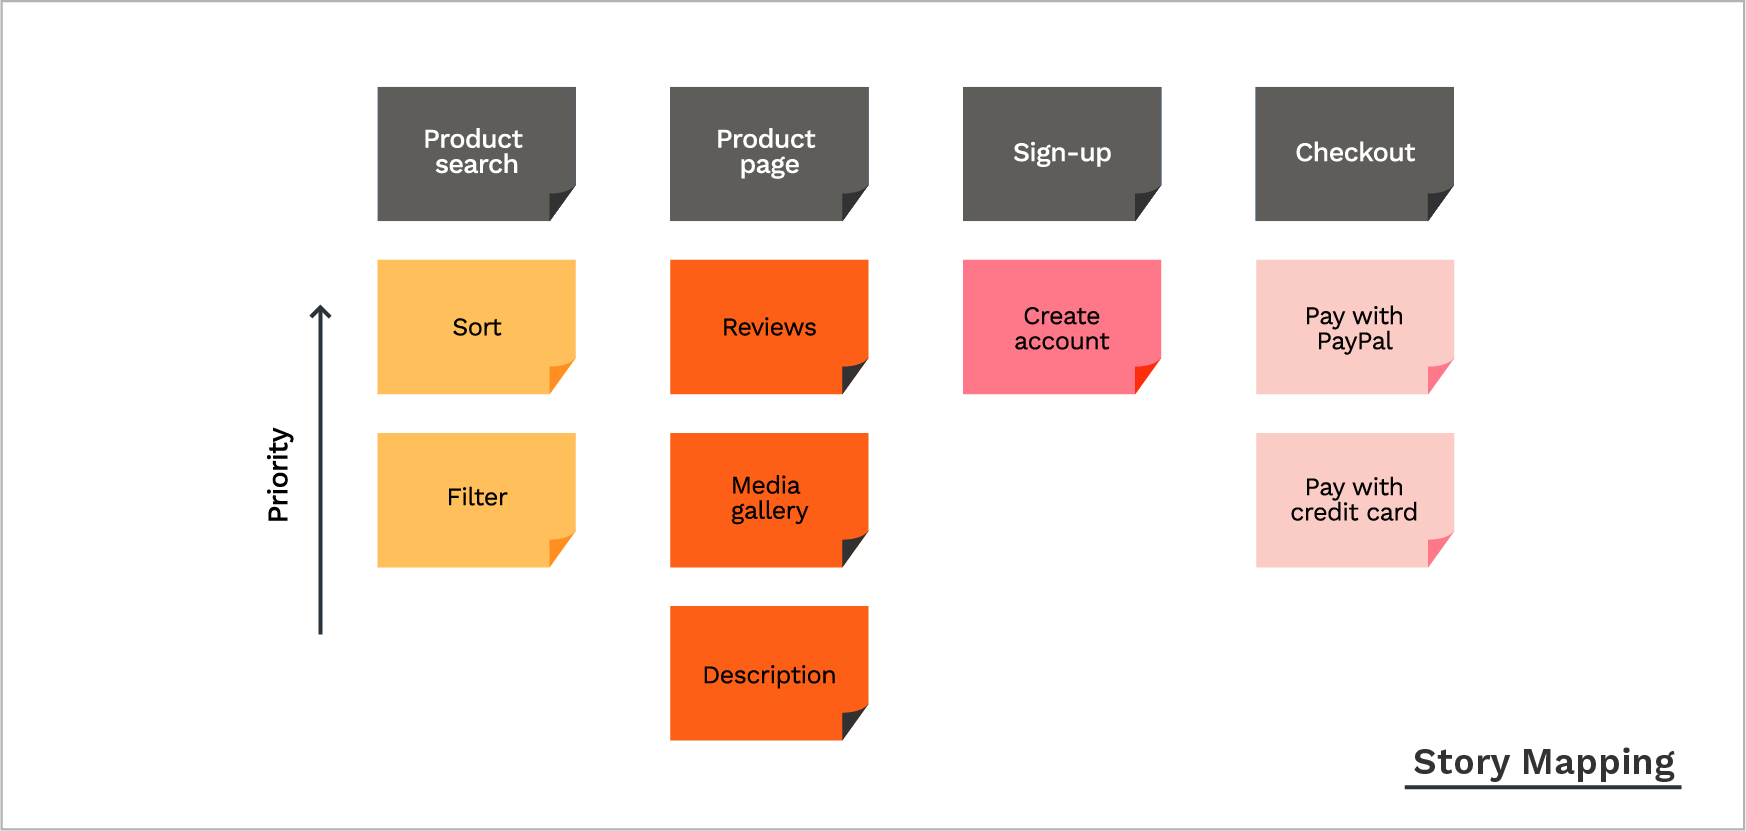 story mapping - product prioritization framework